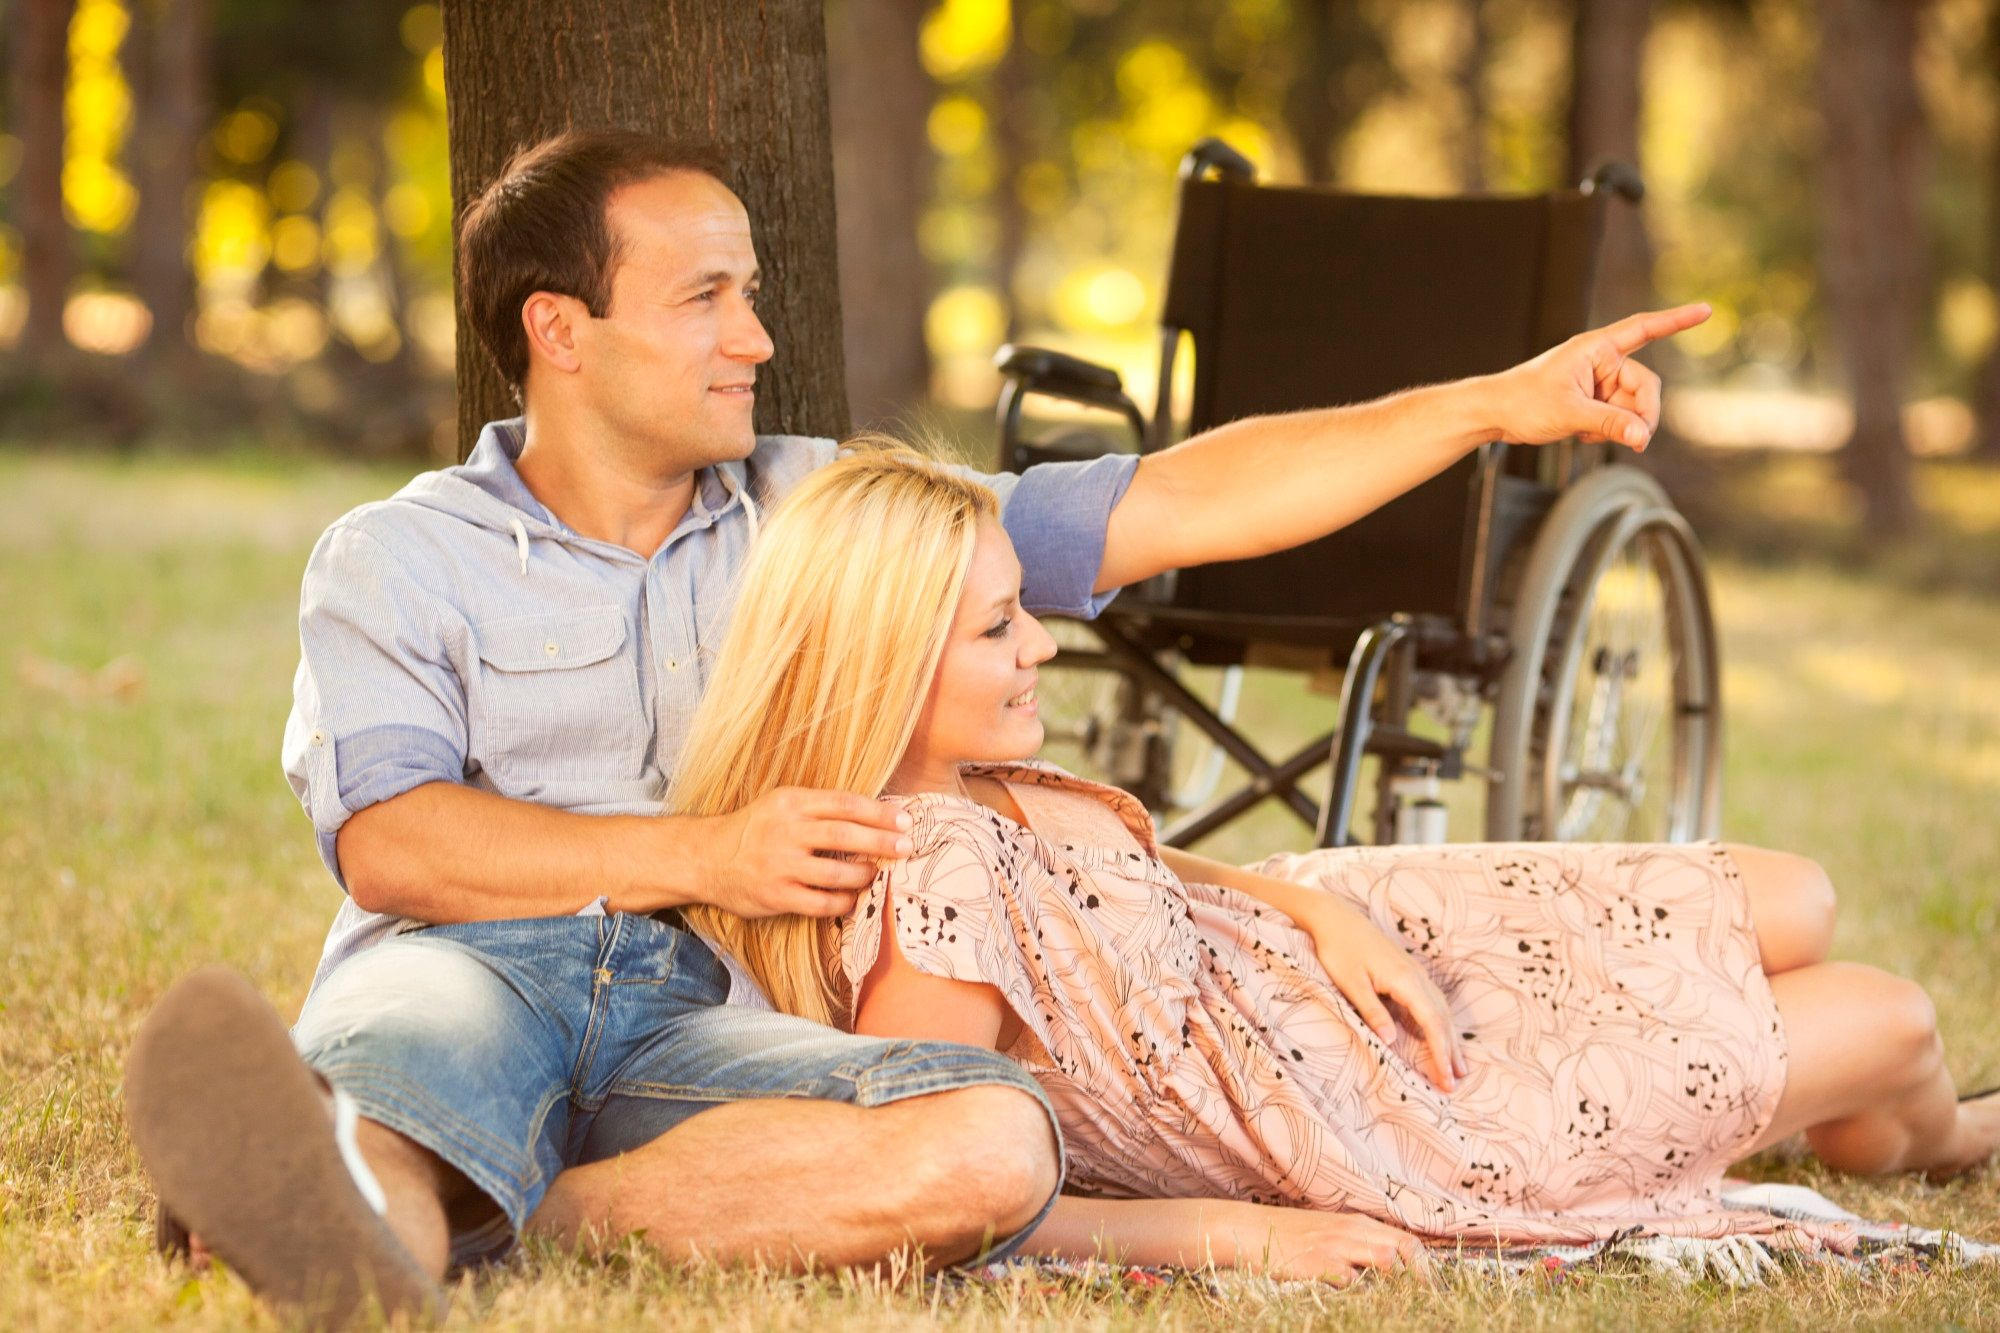 100 free disabled dating sites in uk